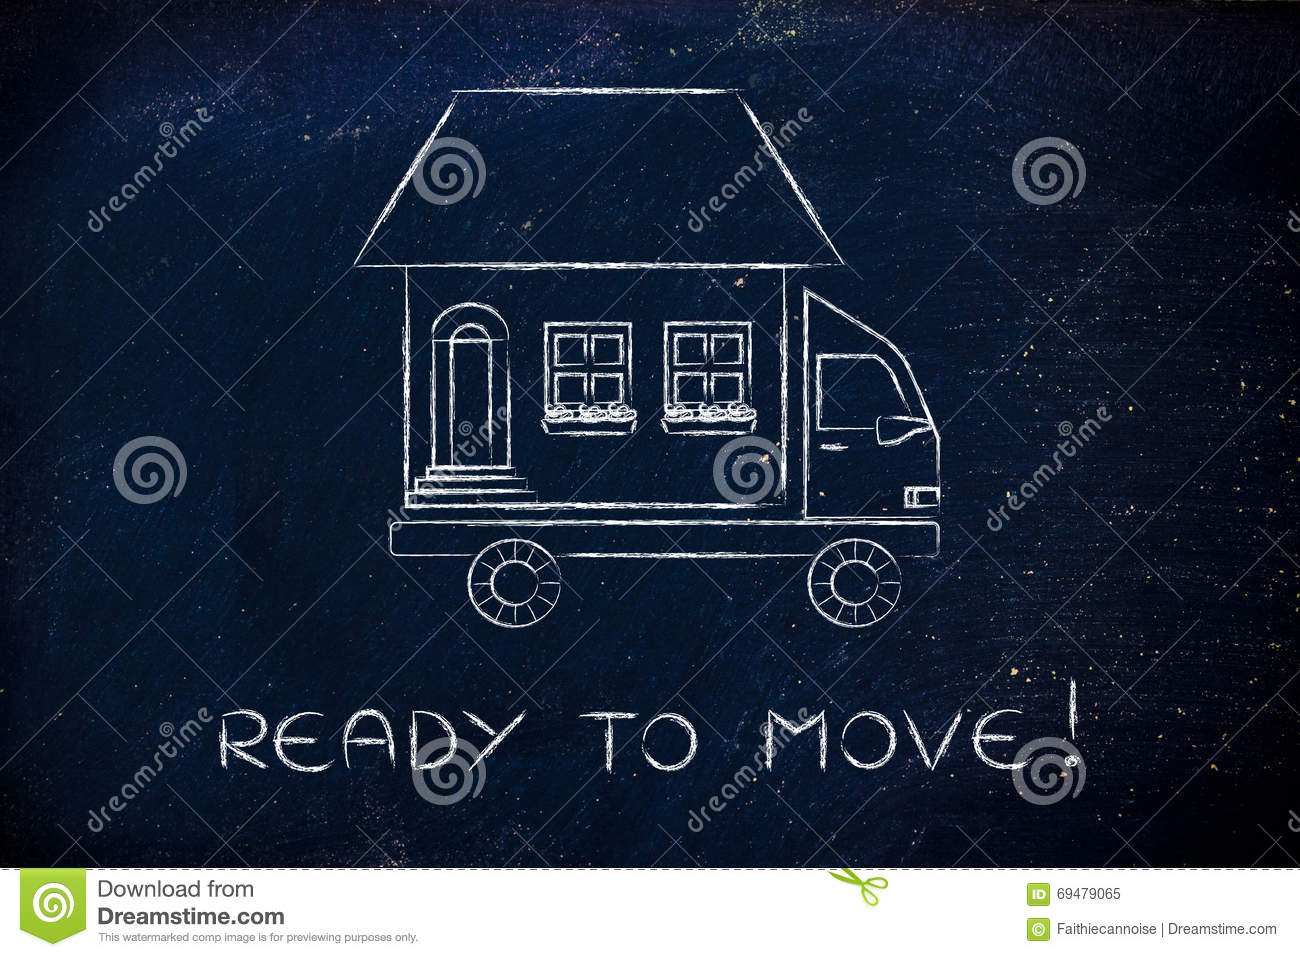 how to get ready to move house